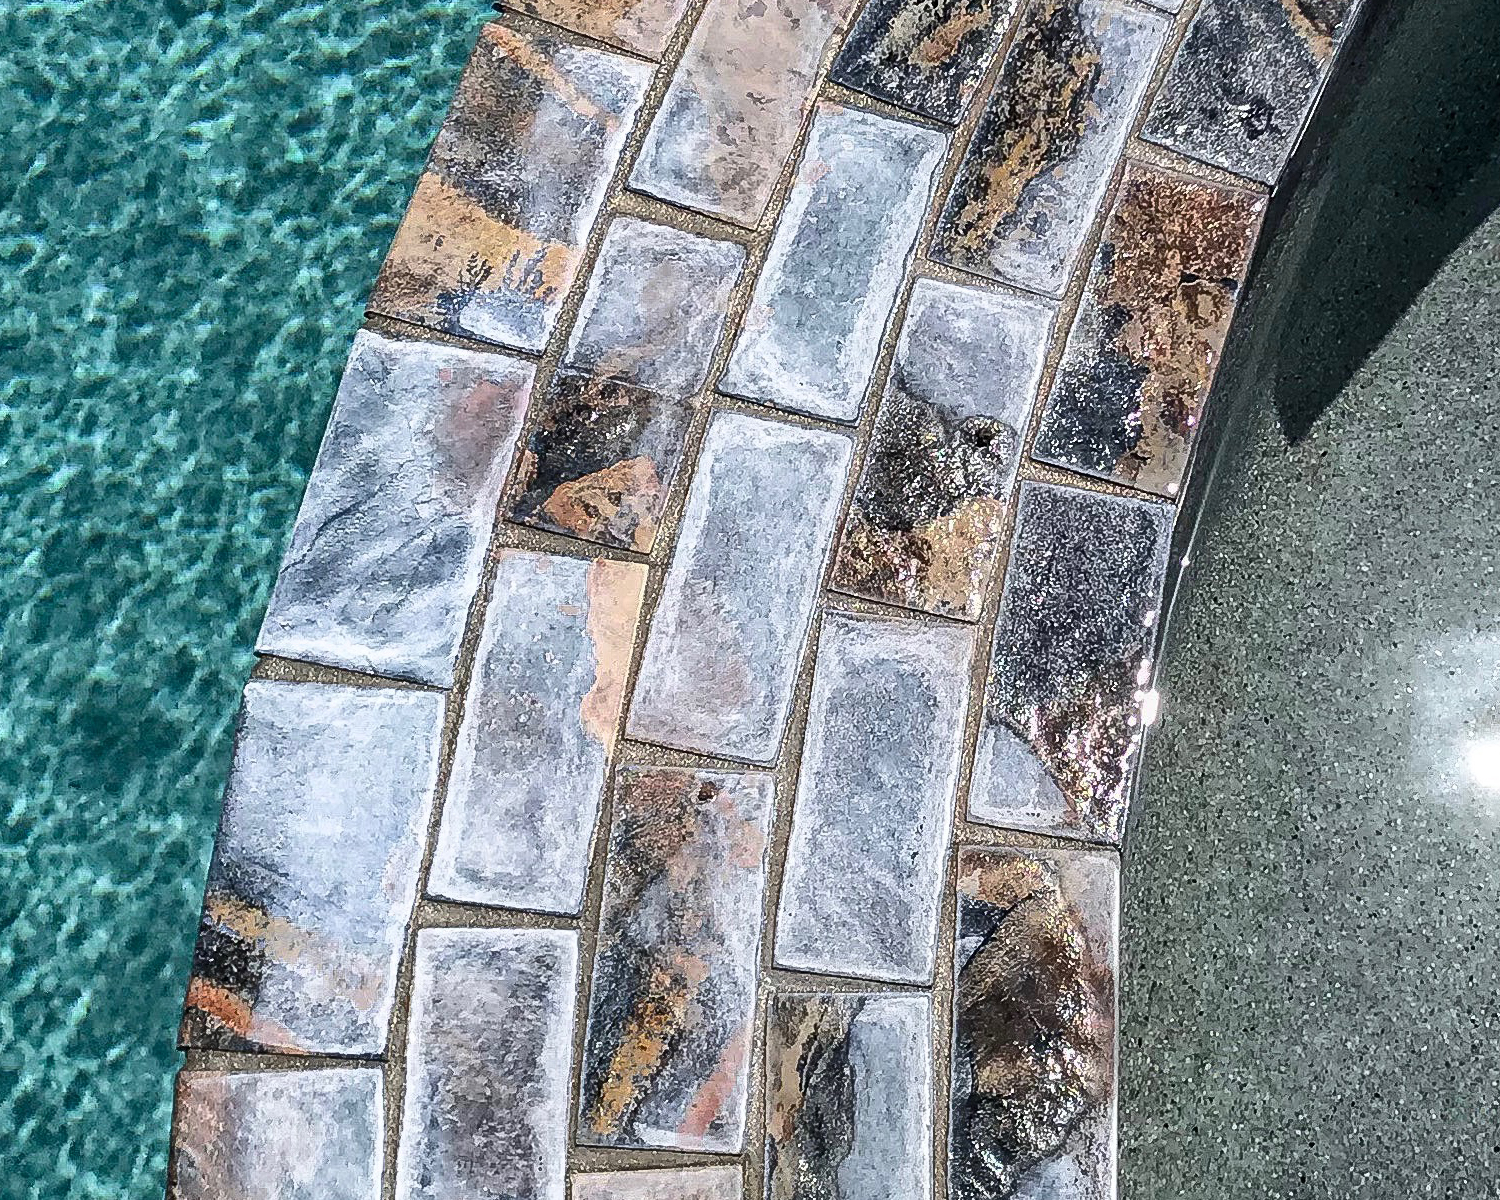 Pool Tile Cleaning Service before